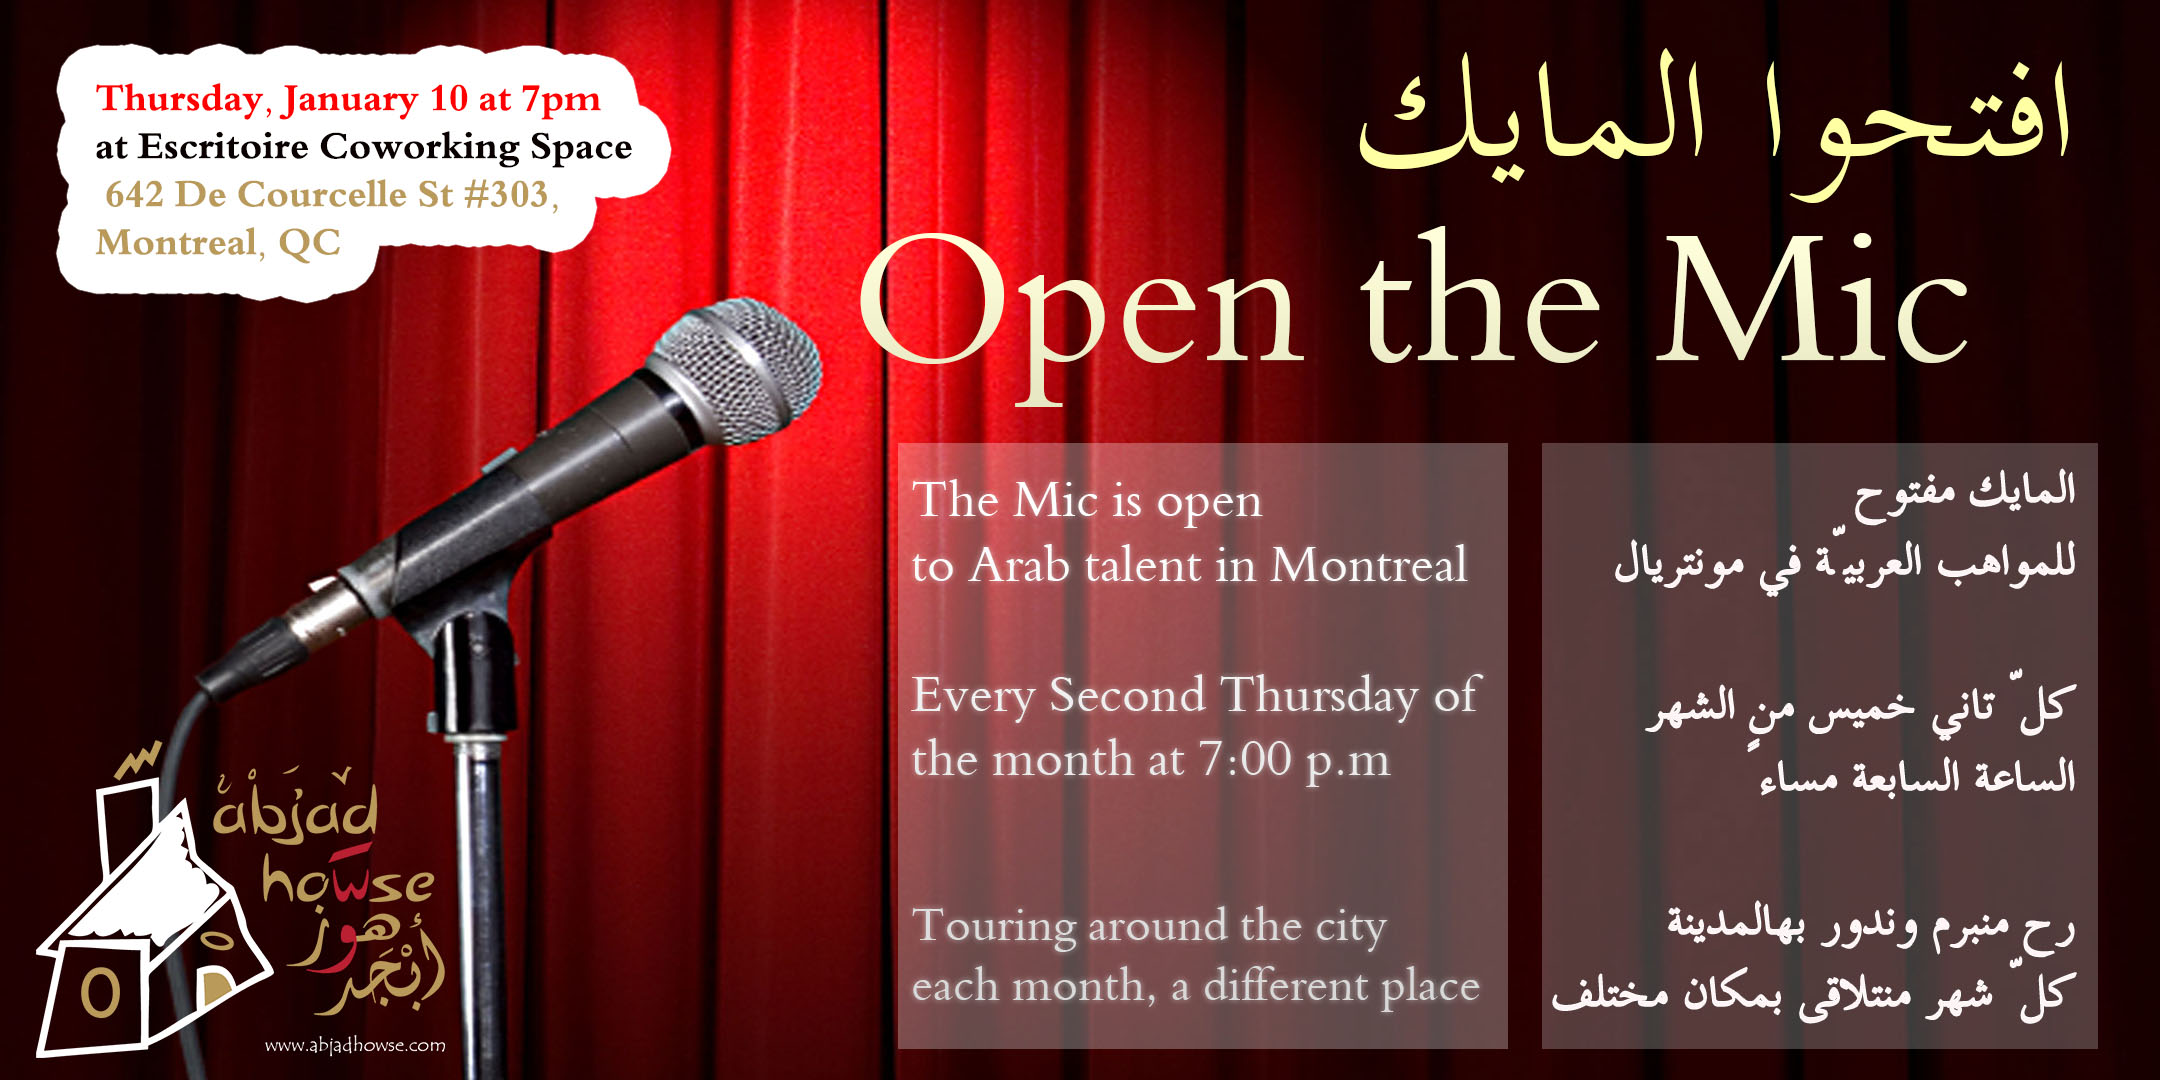 The mic is open for Arabic talents and friends once every month in Montreal